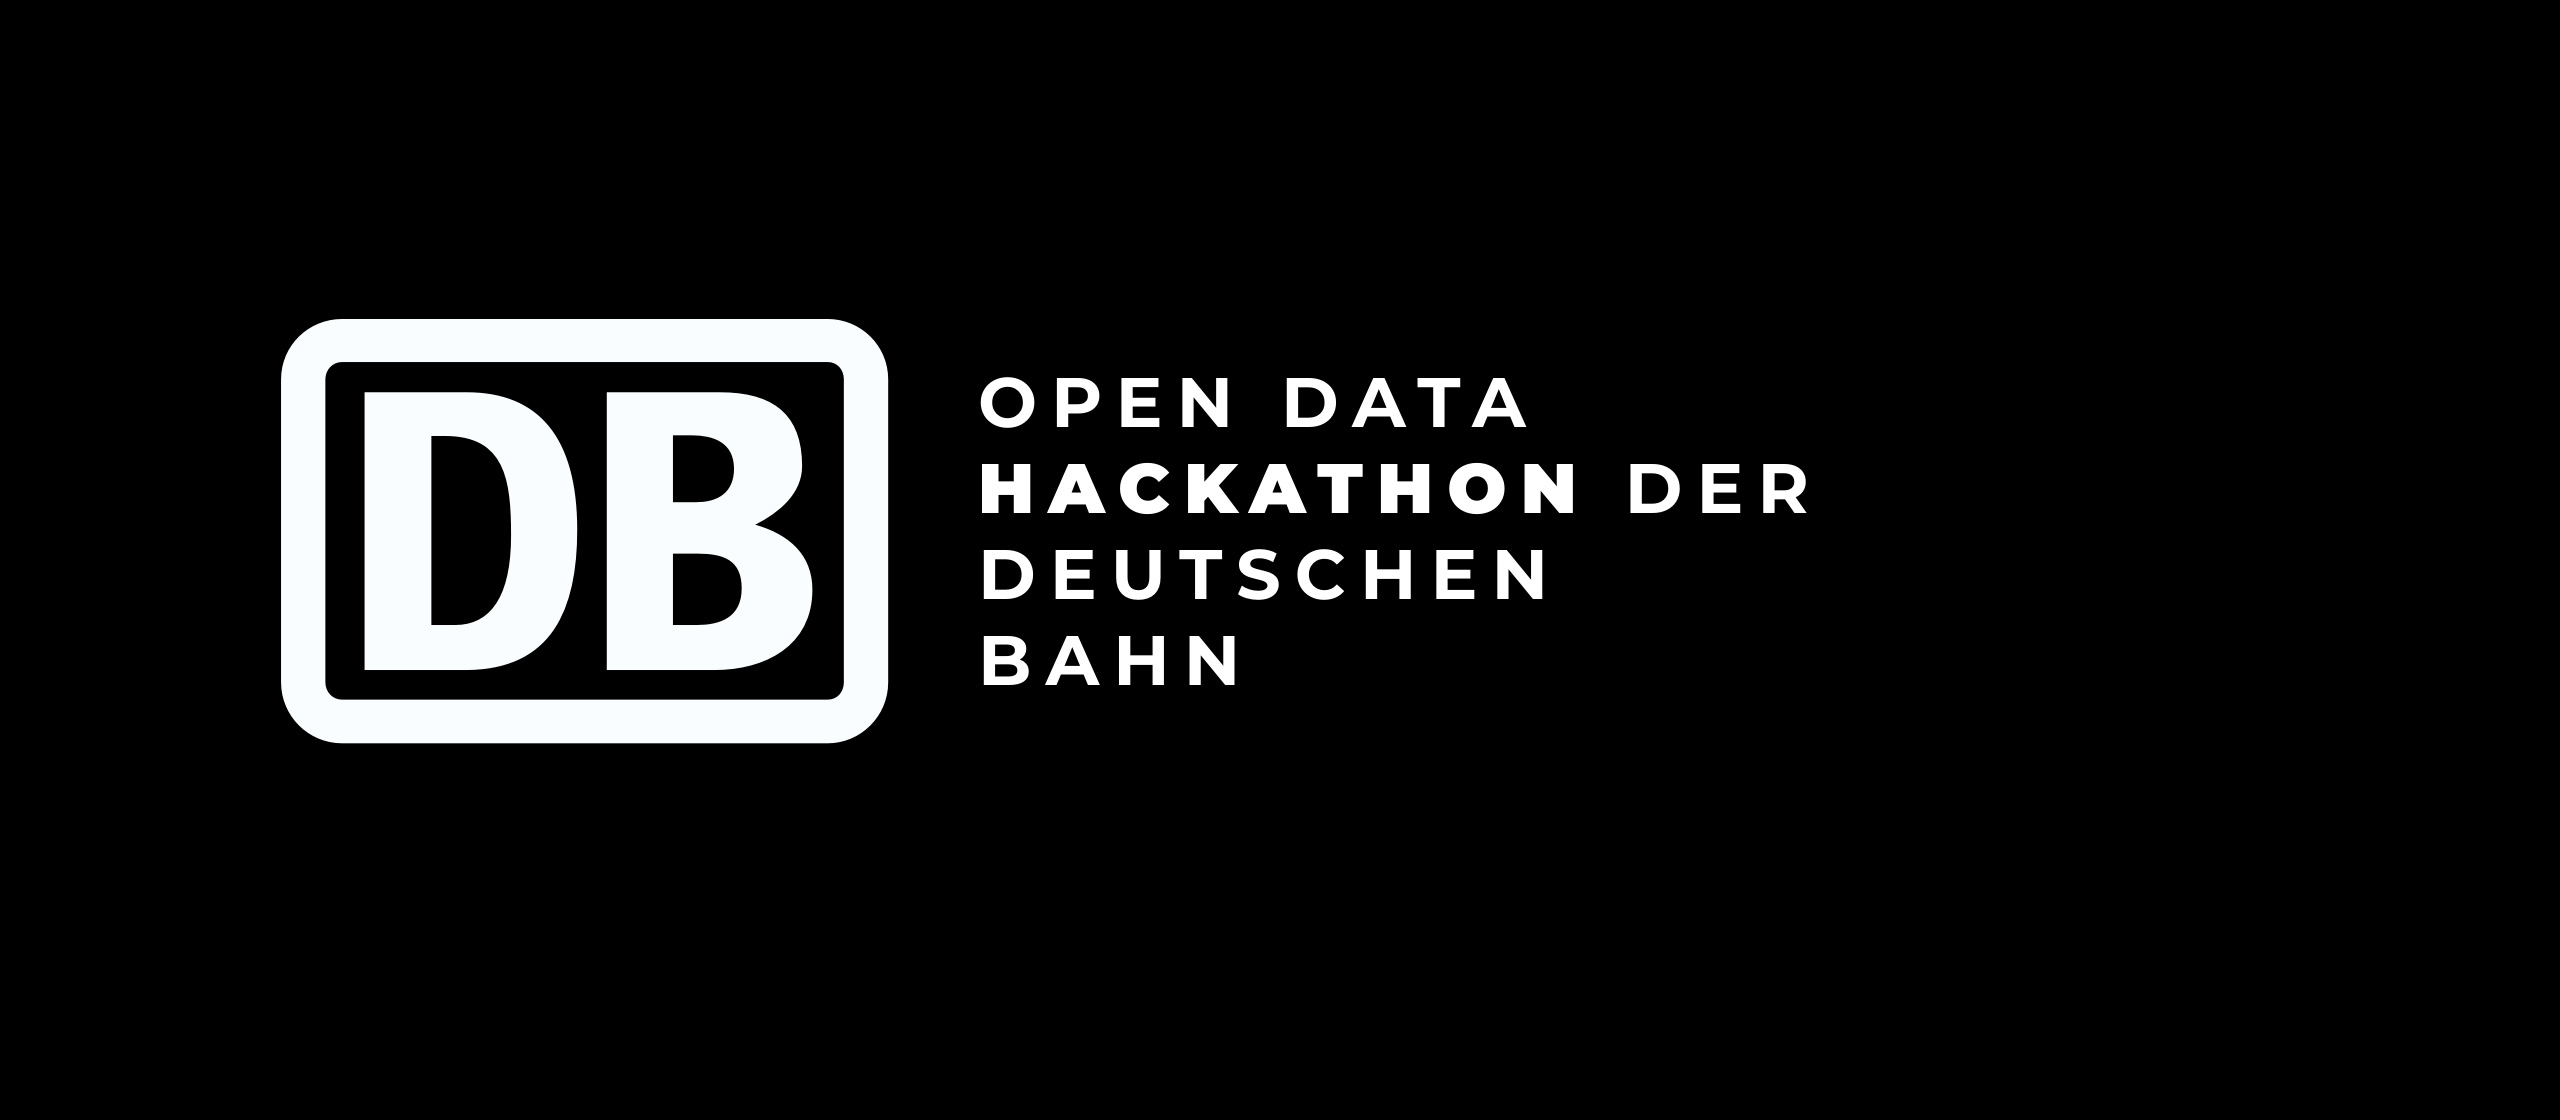 let's dev Blog | Open Data Hackathon der Deutschen Bahn